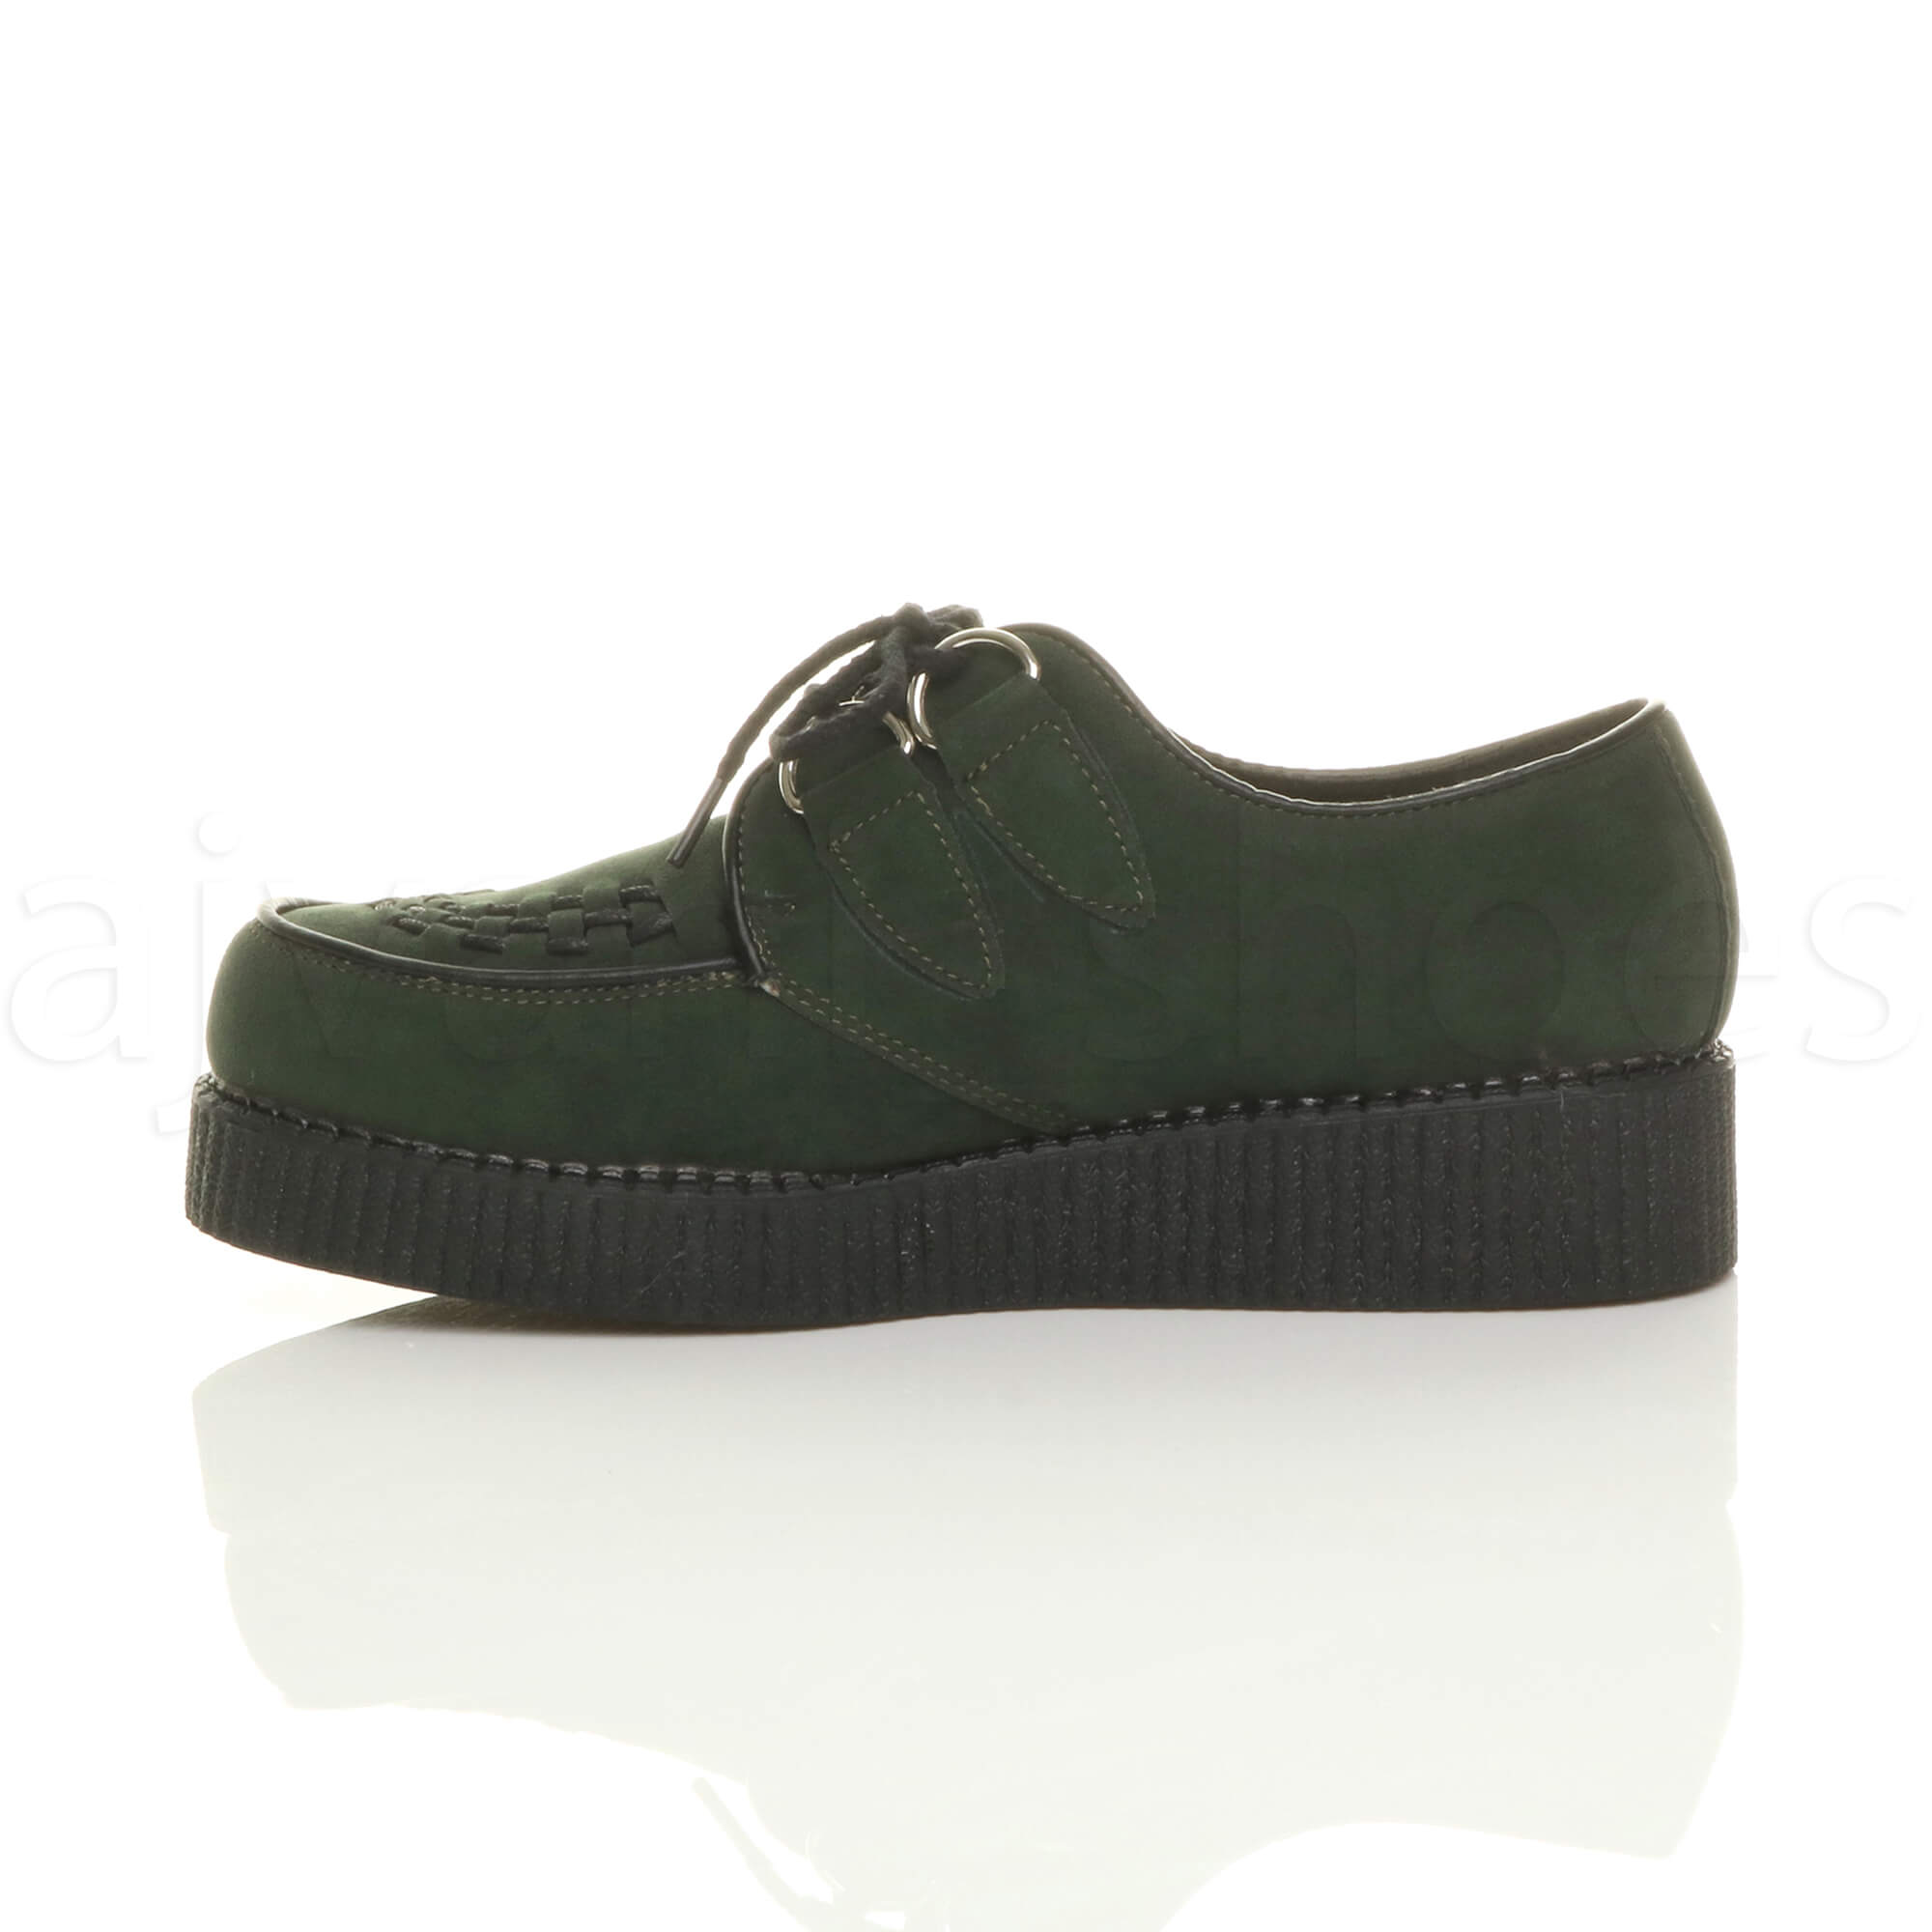 MENS-PLATFORM-WEDGE-LACE-UP-GOTH-PUNK-BROTHEL-CREEPERS-BEETLE-CRUSHERS-SHOES thumbnail 25